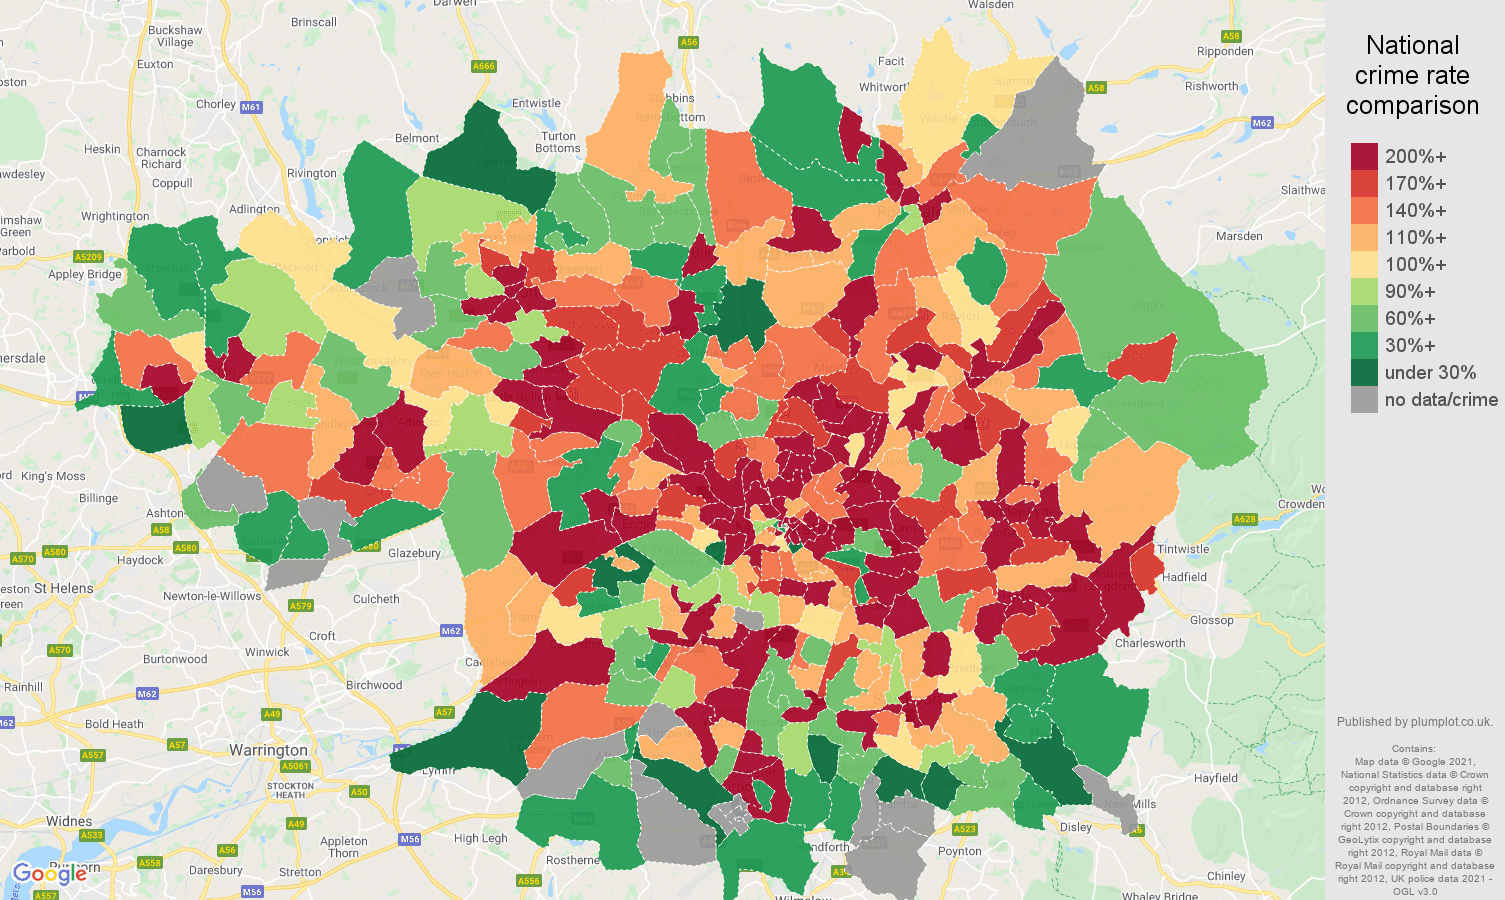 Greater Manchester possession of weapons crime rate comparison map